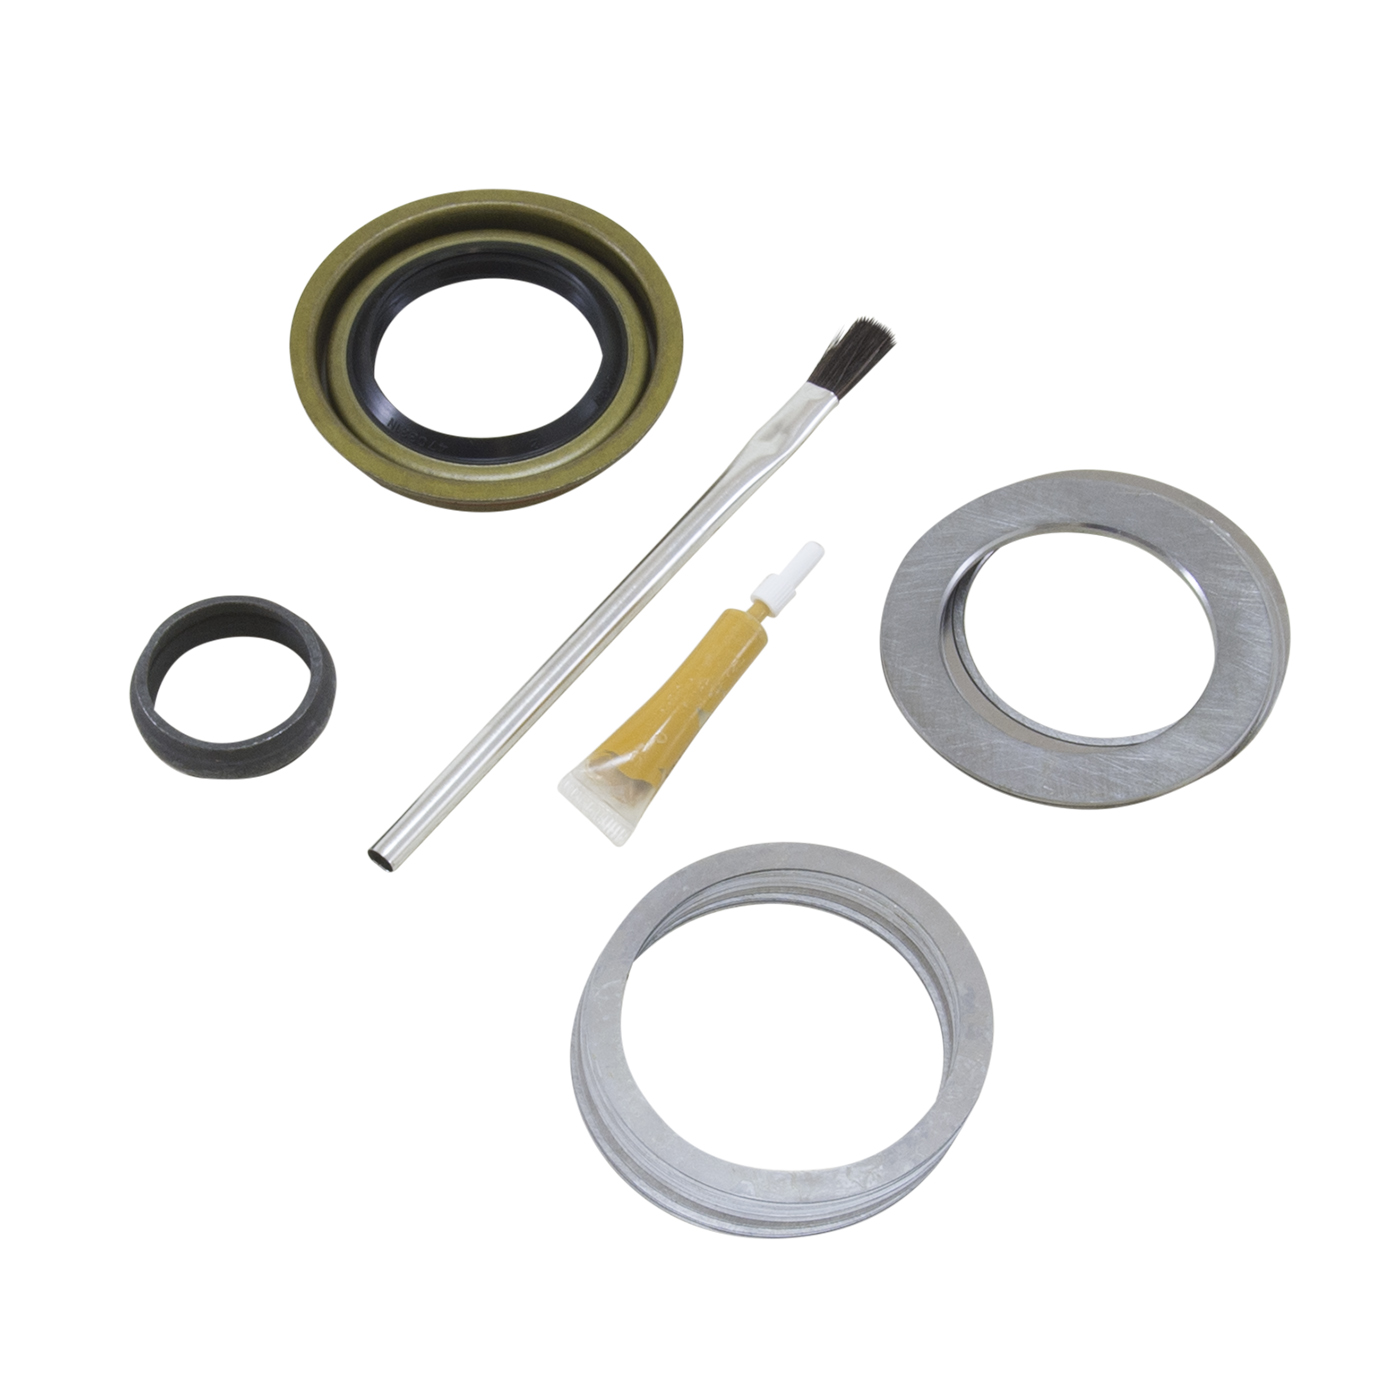 MK M35-IFS - Yukon Minor install kit for Model 35 IFS differential for Ranger and Explorer